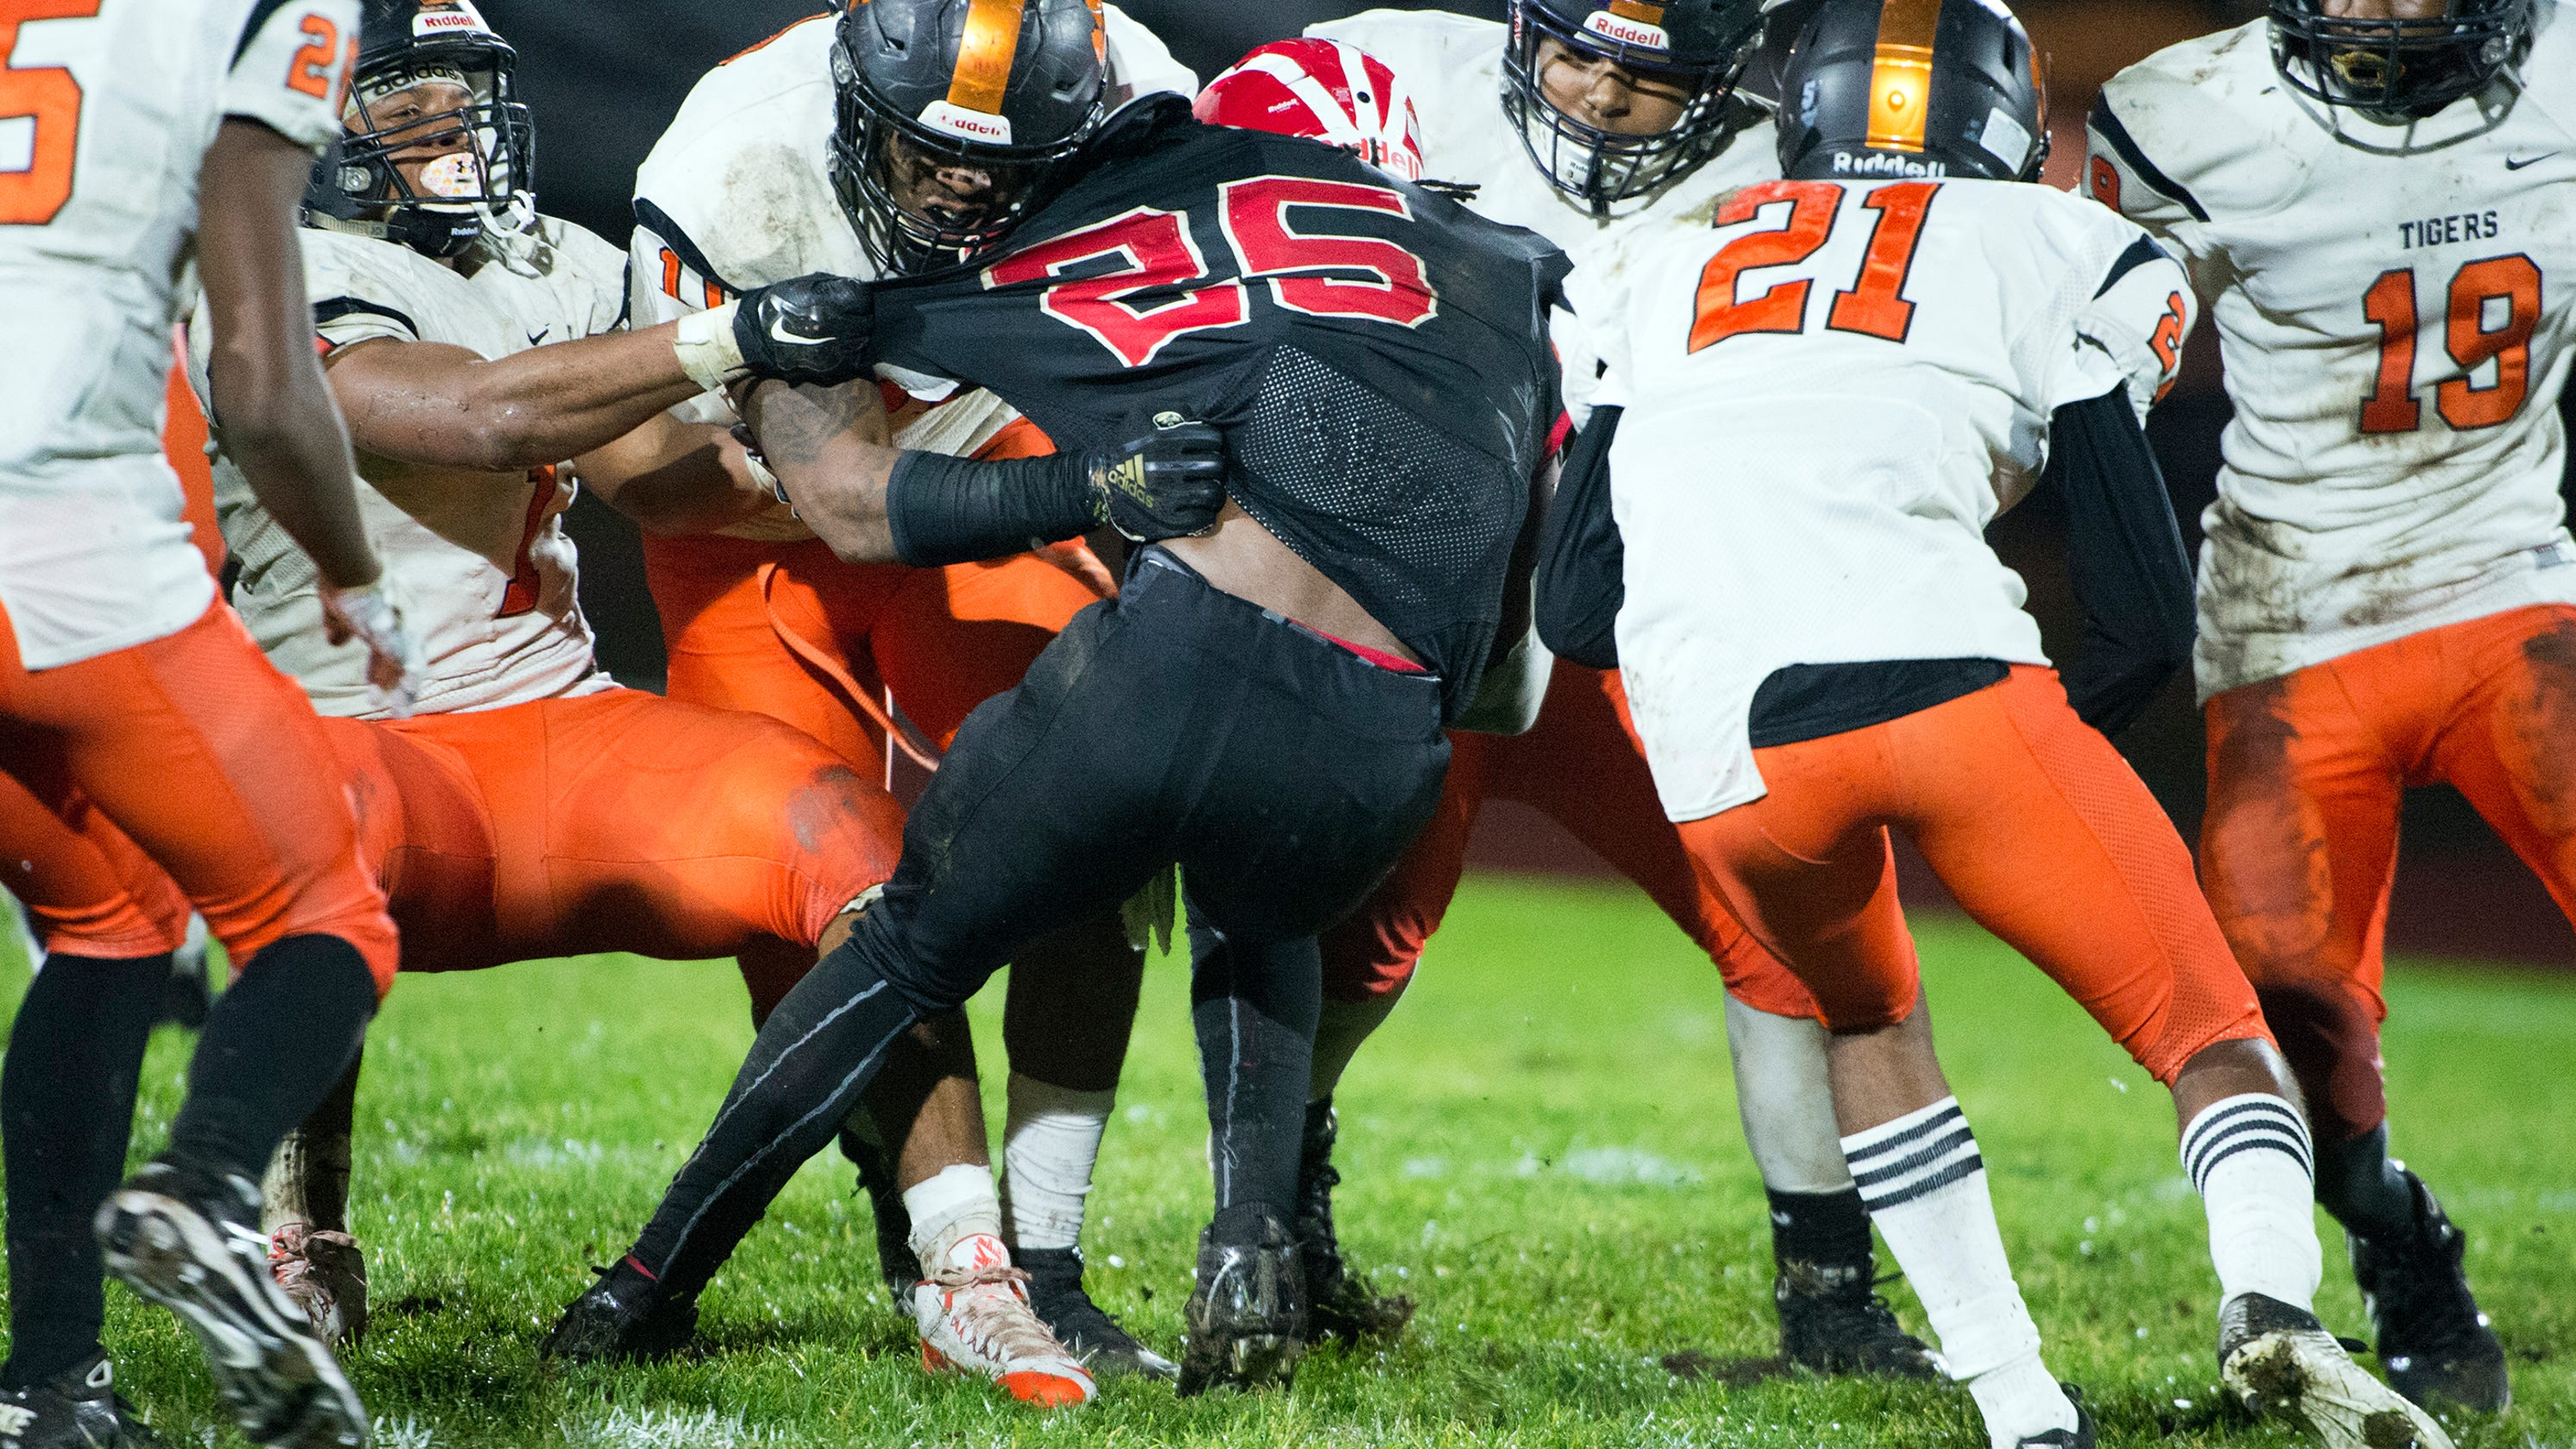 South Jersey football  Woodrow Wilson runs over Delsea to reach sectional  final db9c4c51b